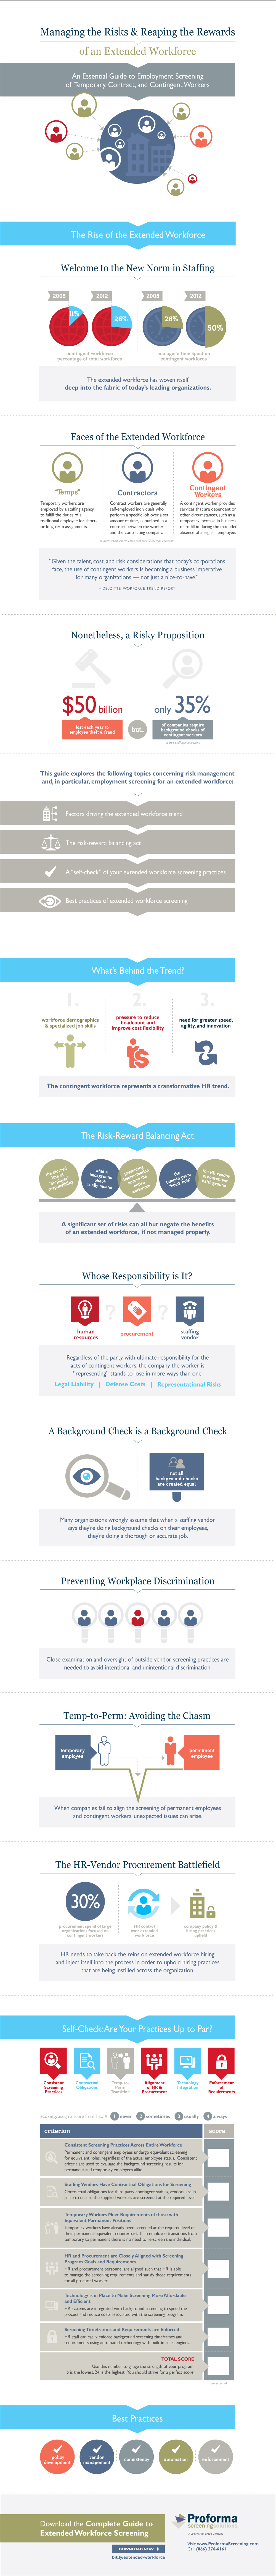 Proforma Extended Workforce infographic